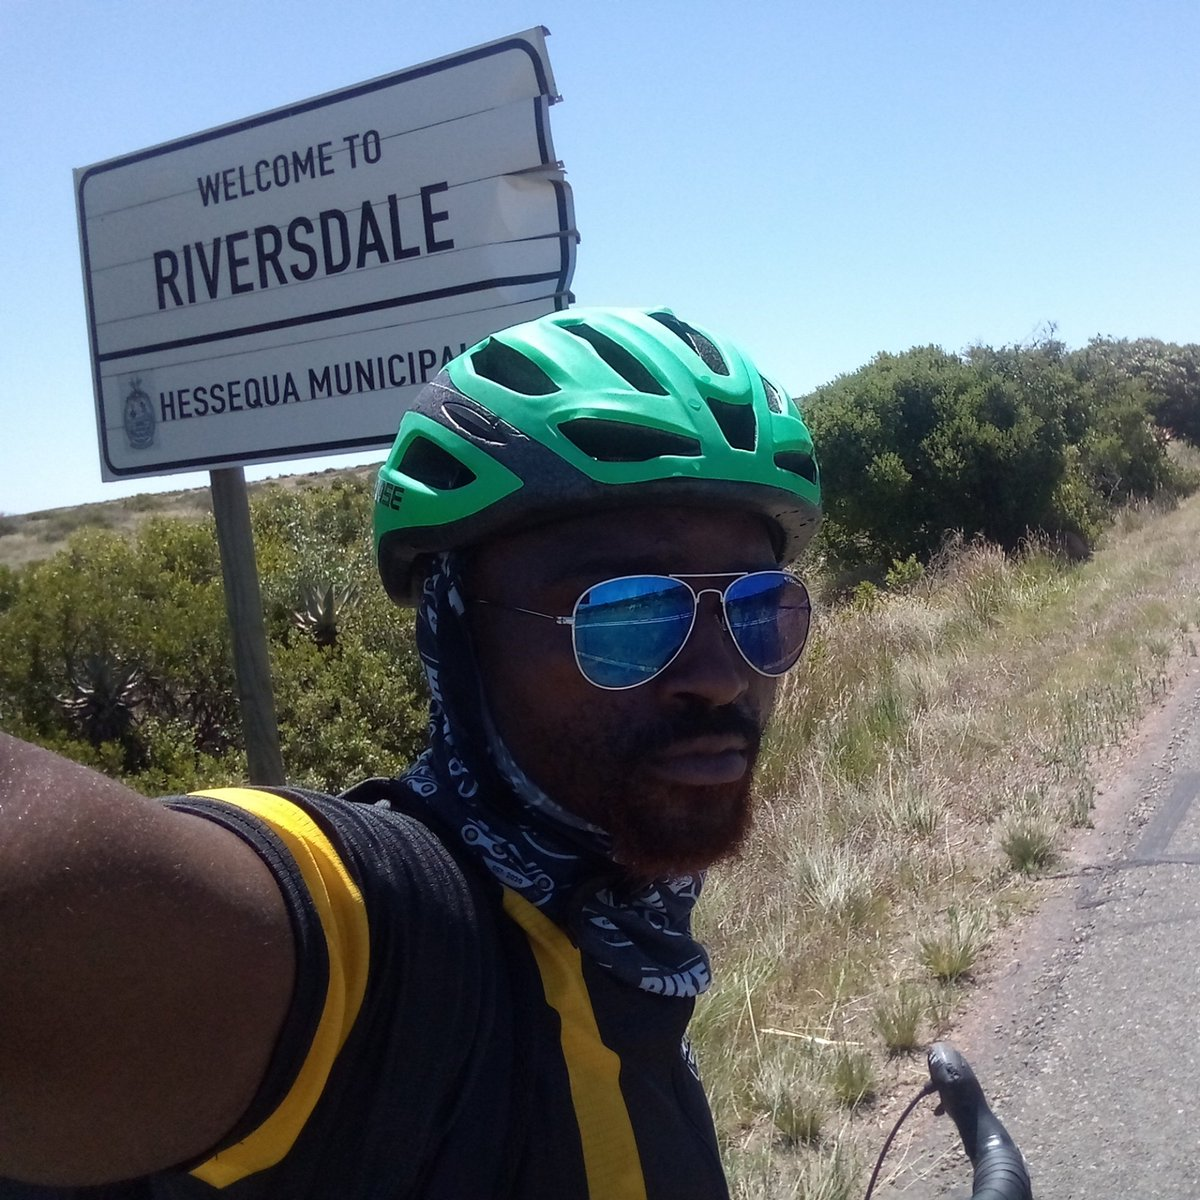 I got to explore SA on my bicycle. 5 Provinces OVER 2450KM and I am still unpacking my experience. It may not be on a bicycle Mara your journey of healing with open you up to the universe. Take a trip into yourself #rideagainstGBV #16DaysOfActivism